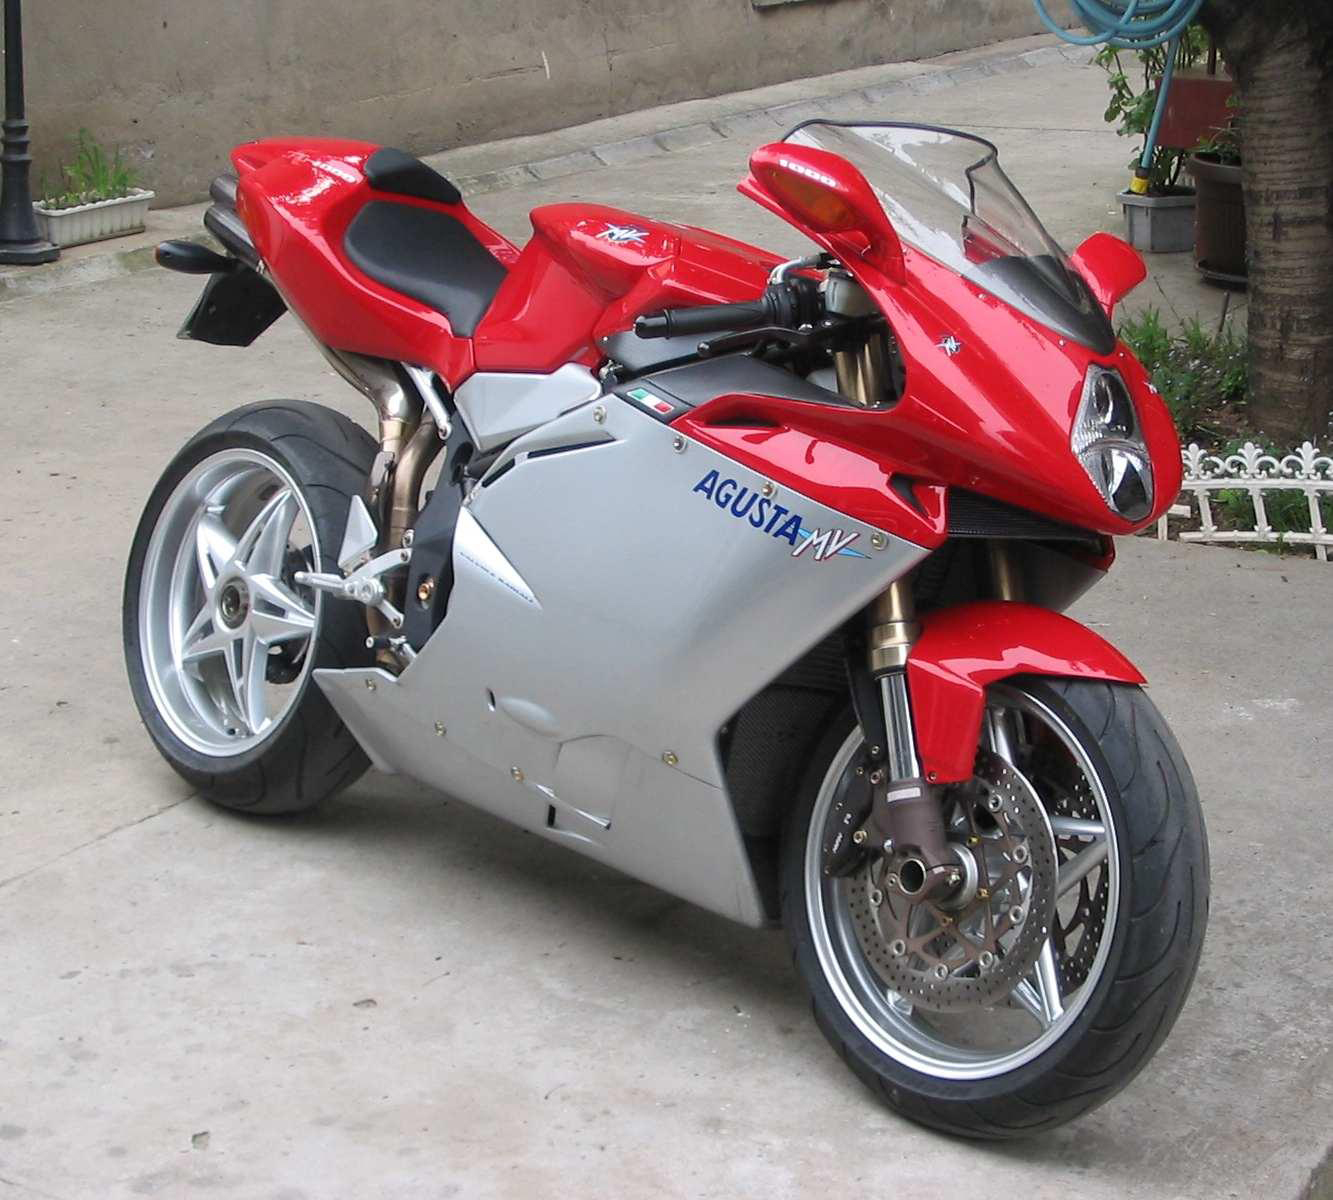 MV Agusta F4 1000 photo 37443